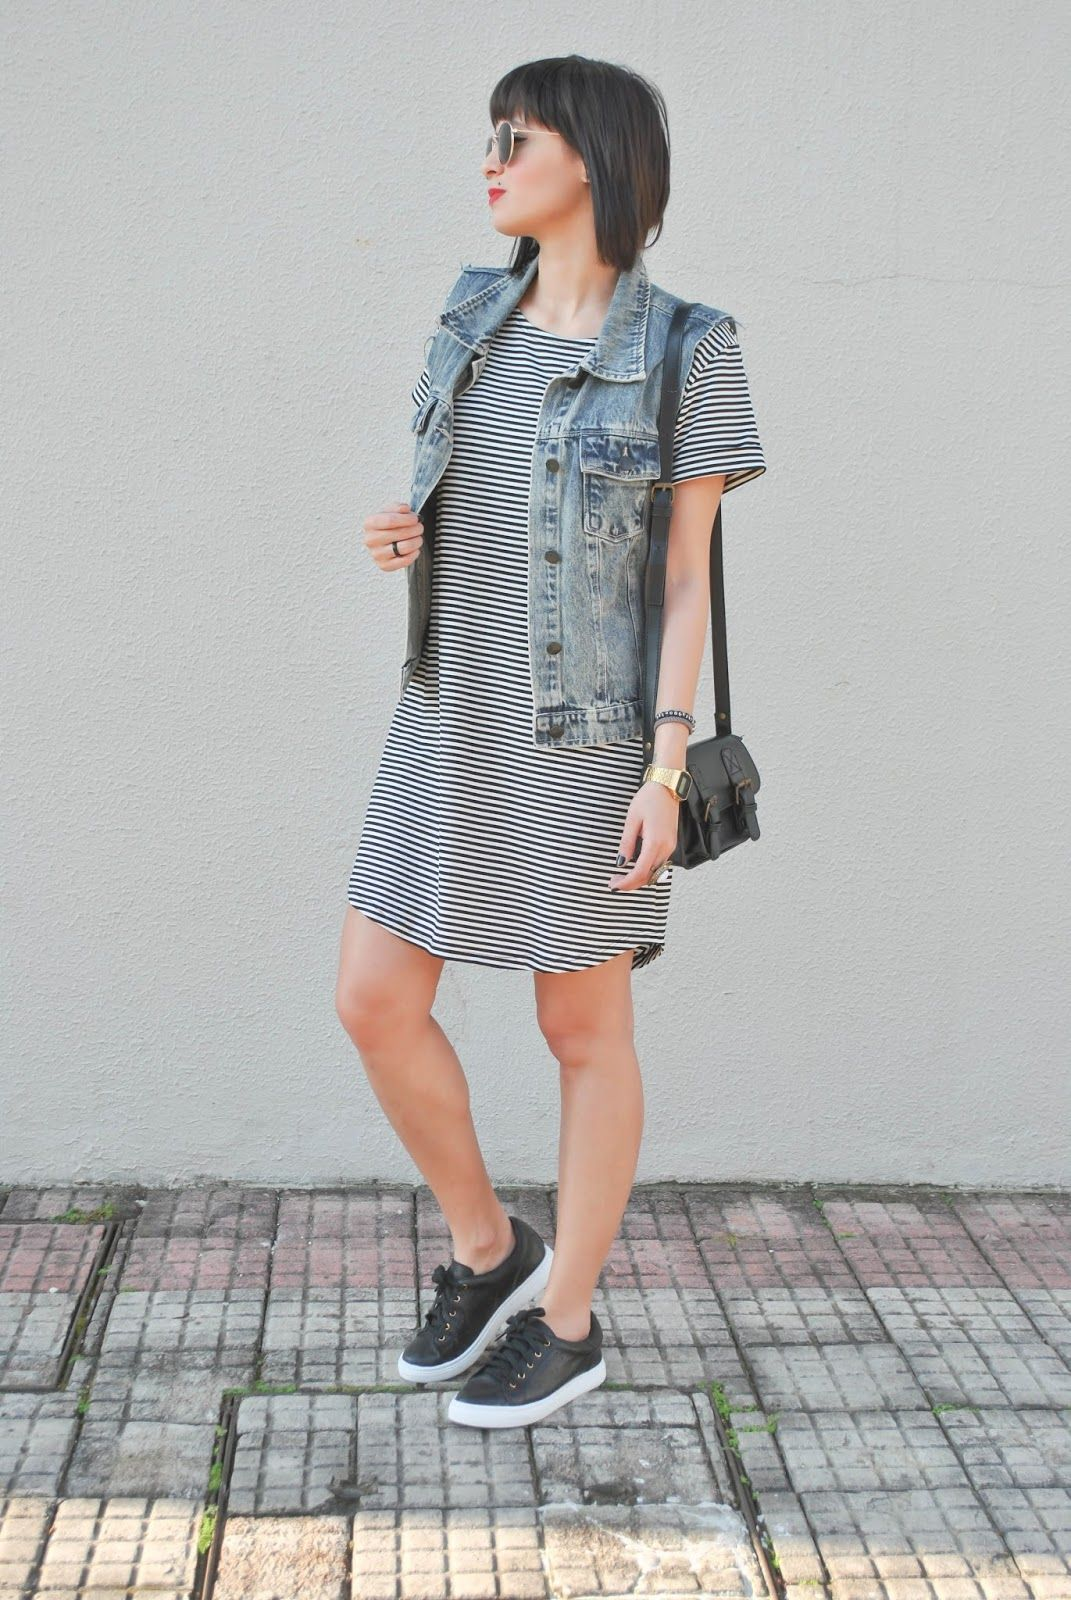 Black Lola Blog: #Look: Black Stripes!